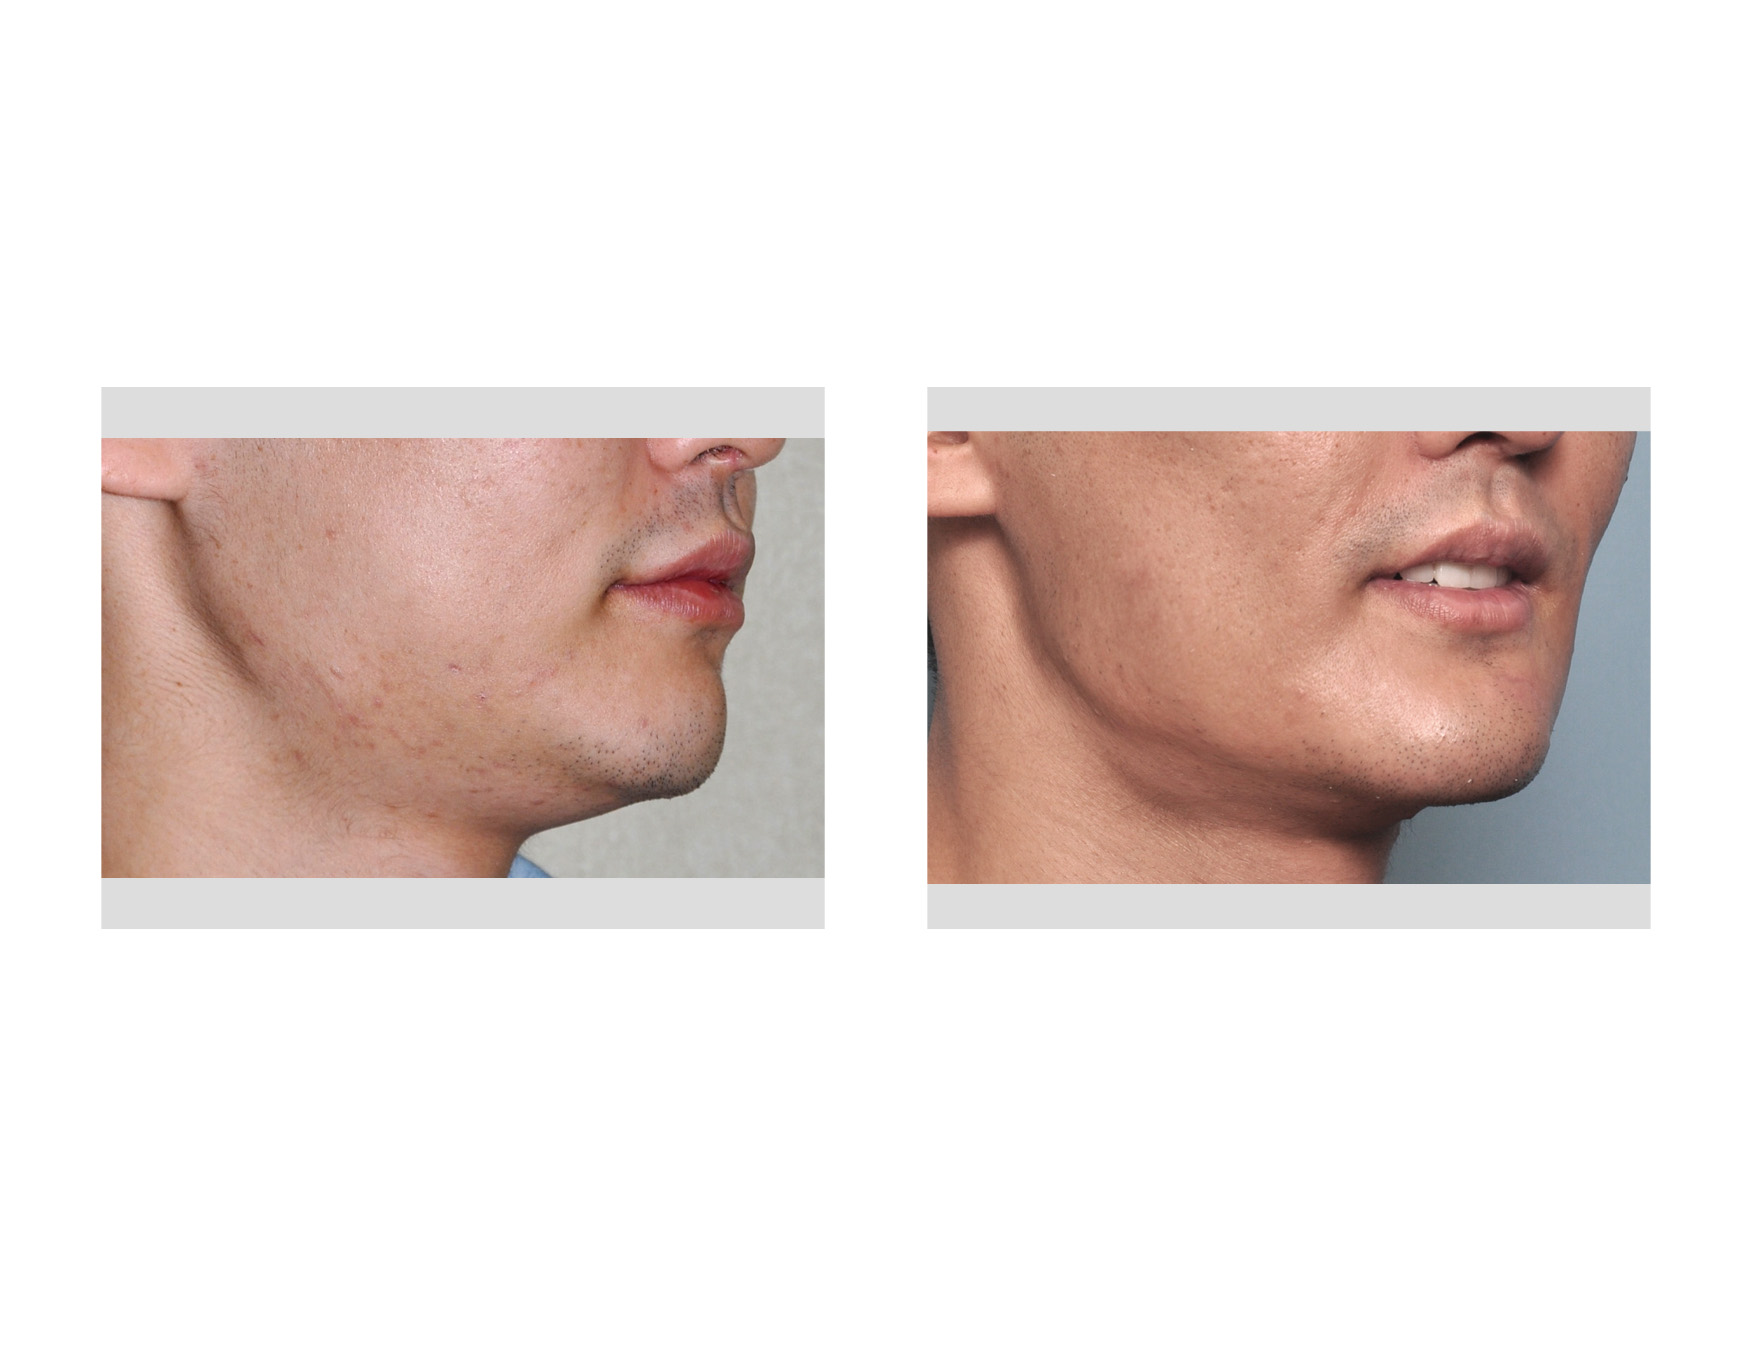 explore plastic surgery dr barry eppley plastic surgeon it is hard to argue the jawline effect of a one piece implant that extends around the chin from angle to angle not only does it make a uniform